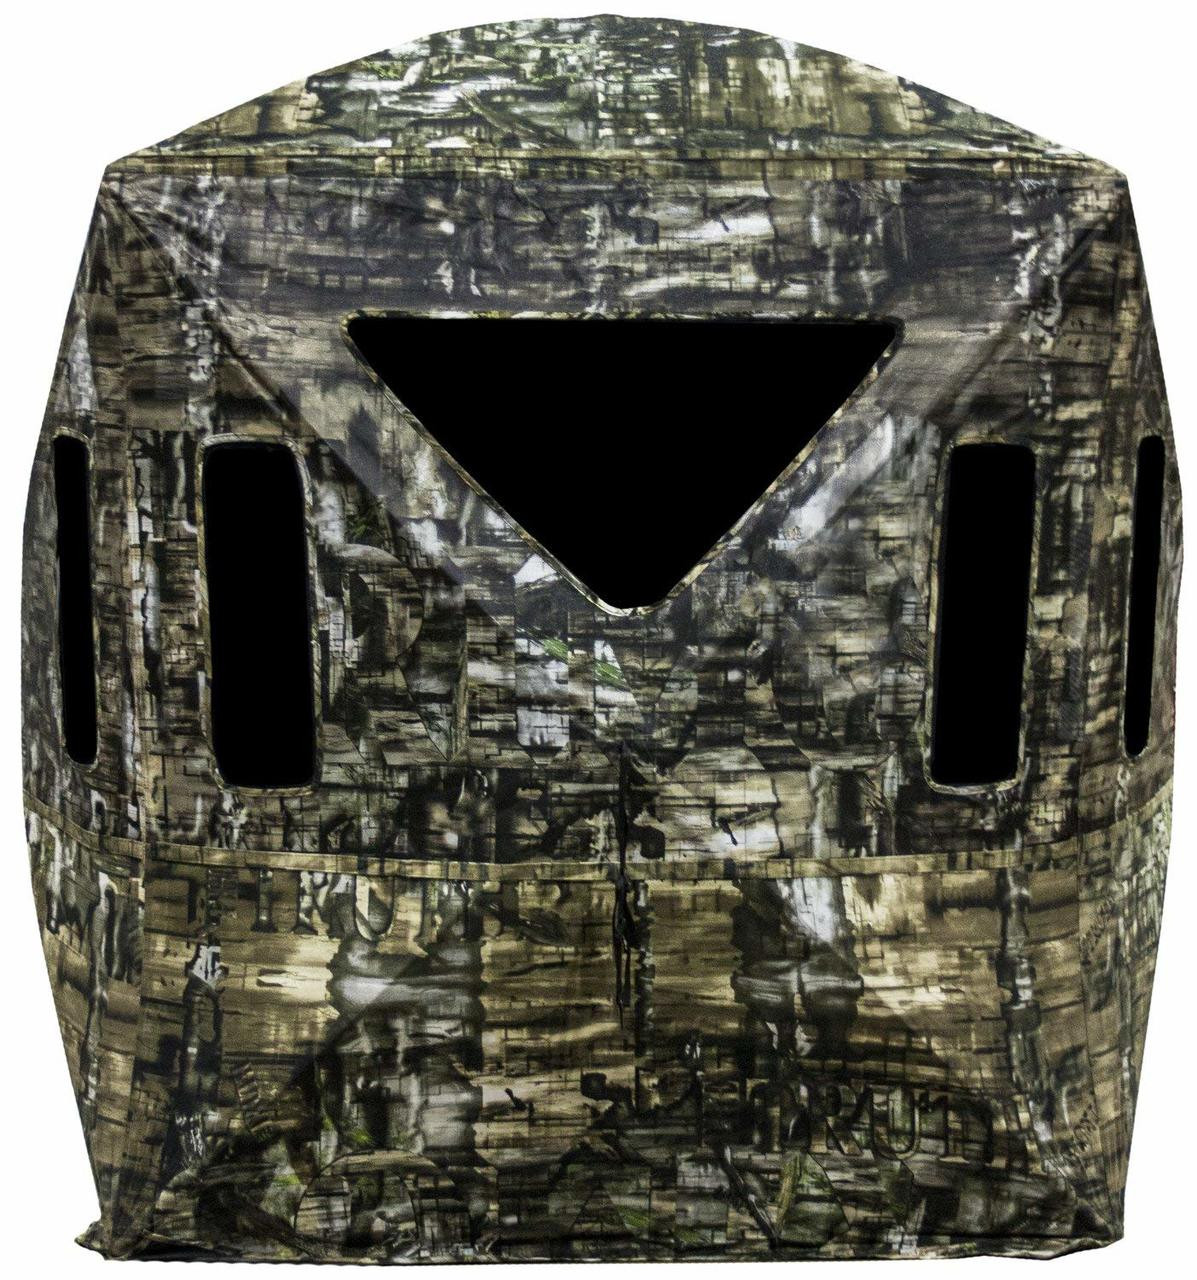 Primos Double Bull Surroundview 270 Ground Blind 65151